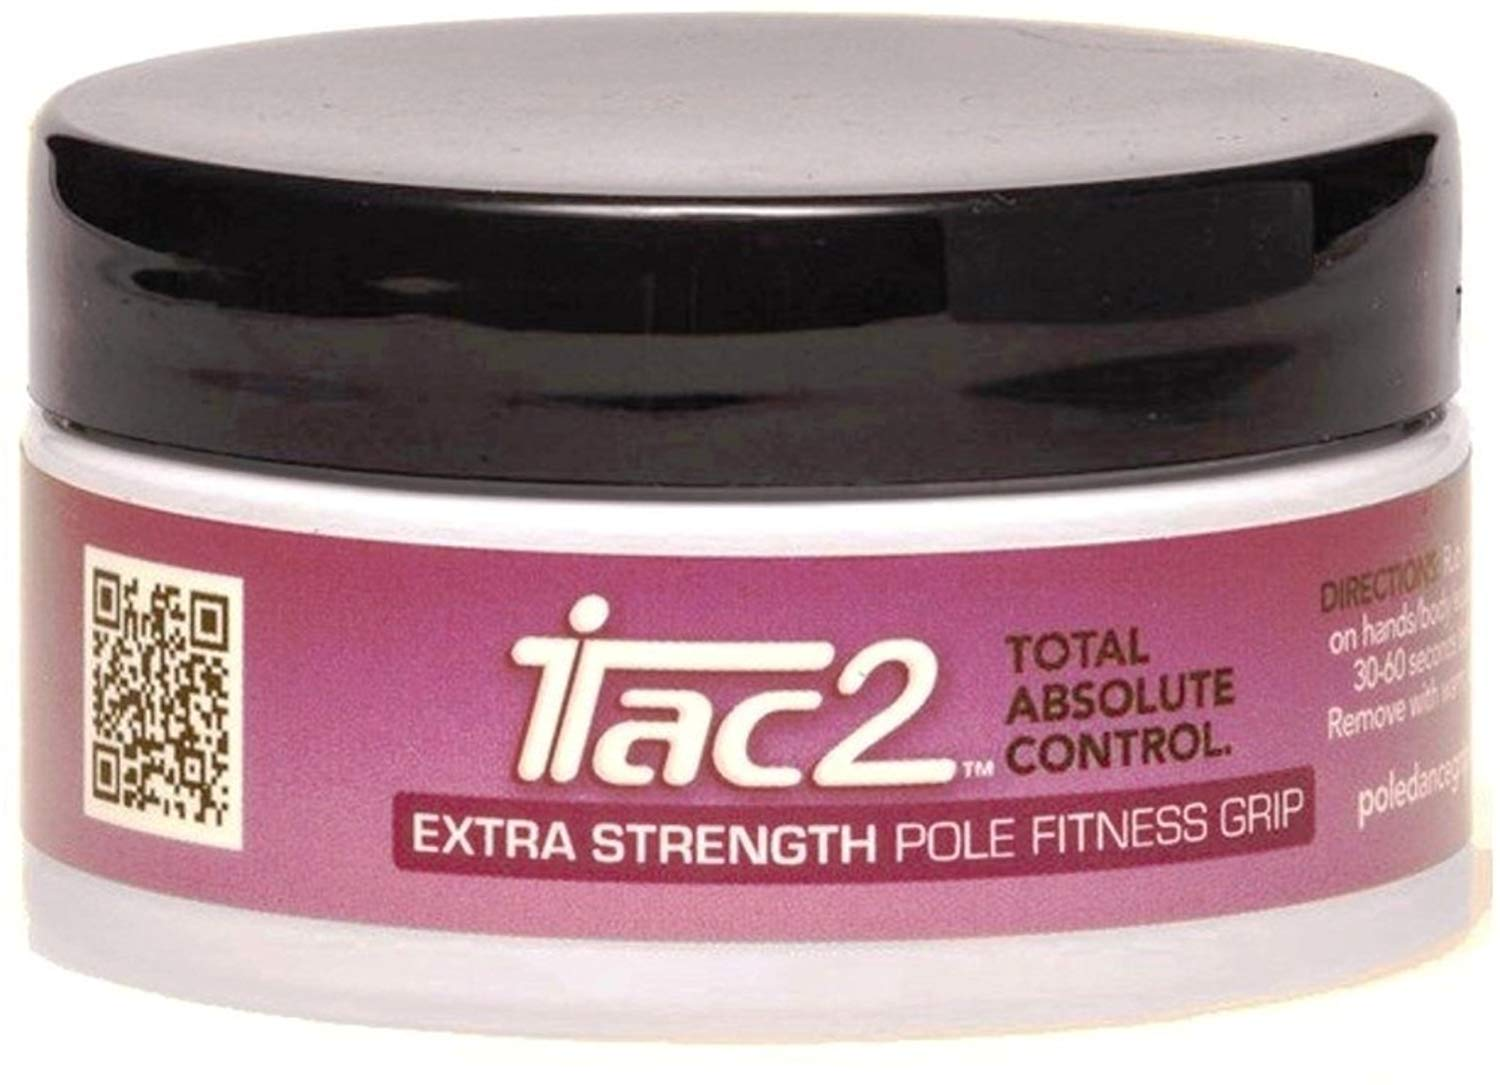 iTAC2 Level 4 (Extra Strength) Total Absolute Control Dance Pole Fitness Sports Grip 20gm